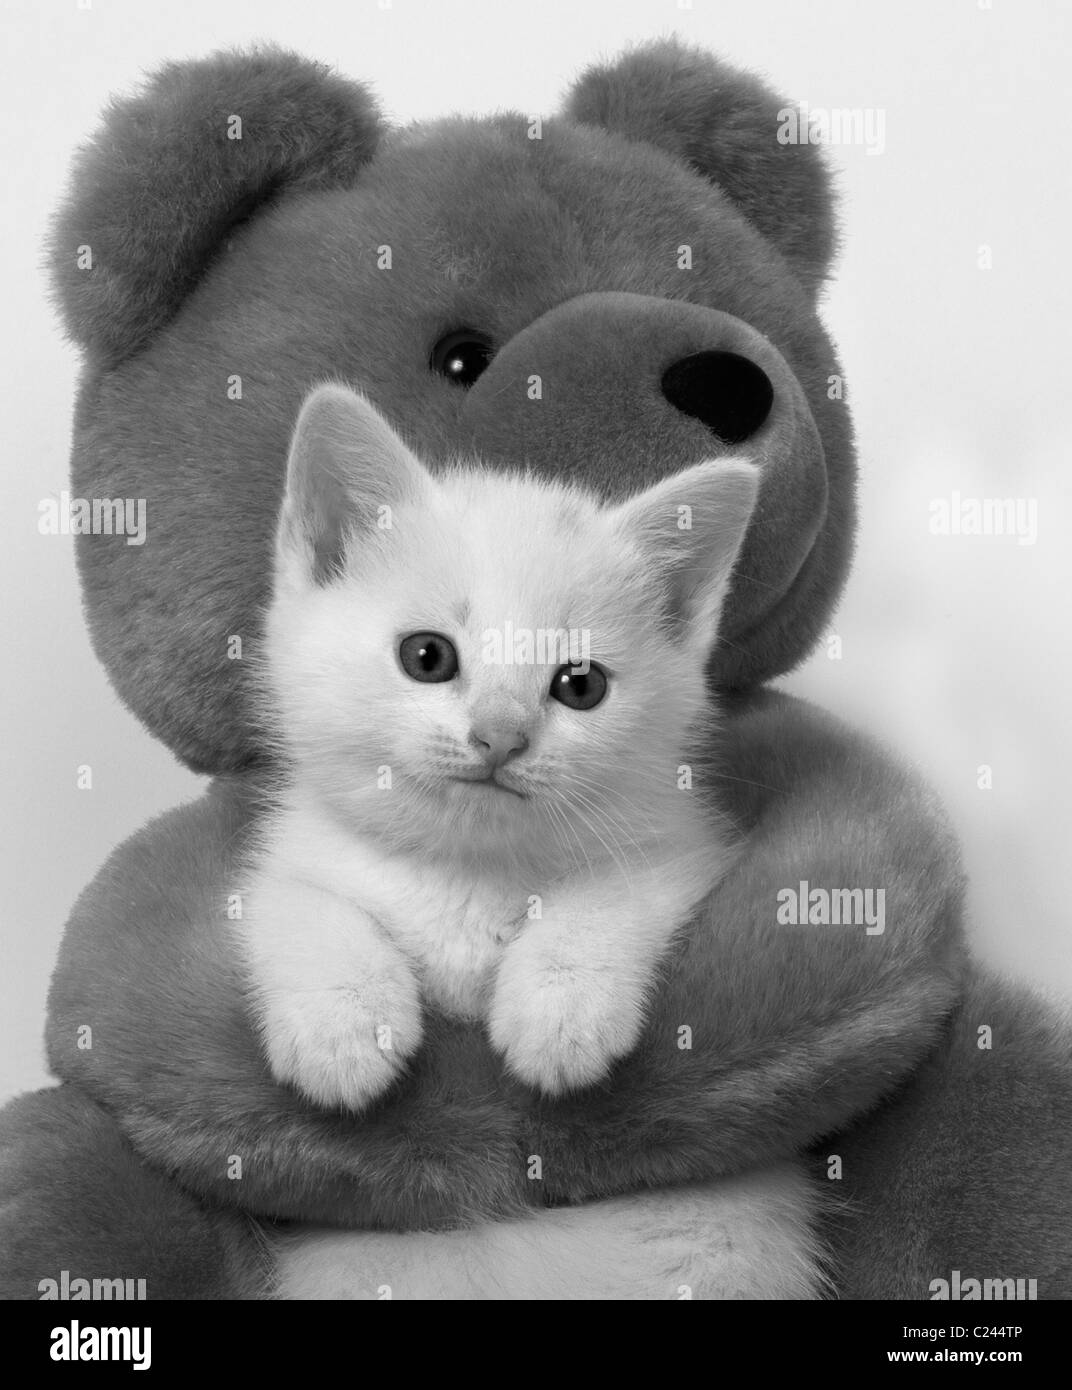 white kitten in arms of teddy bear B&W - Stock Image